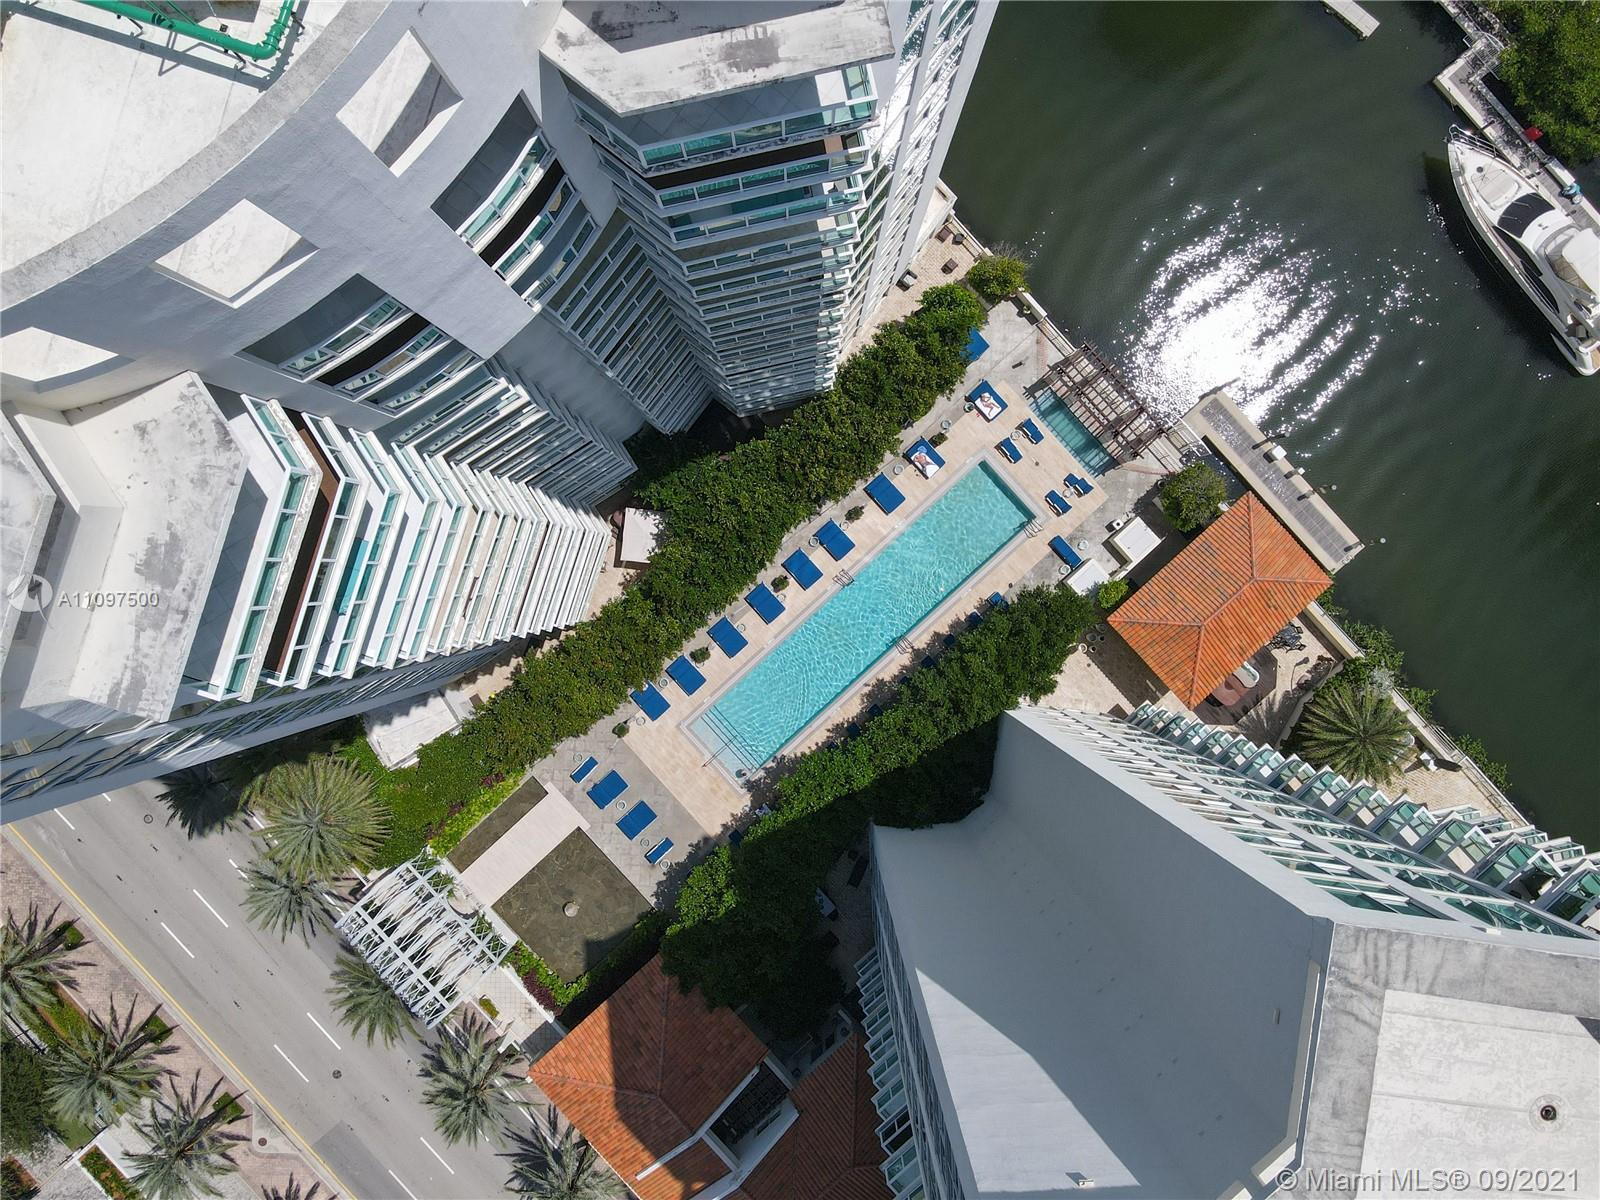 Phenomenal opportunity to own a turn-key apartment with designer furniture at St. Tropez Sunny Isles